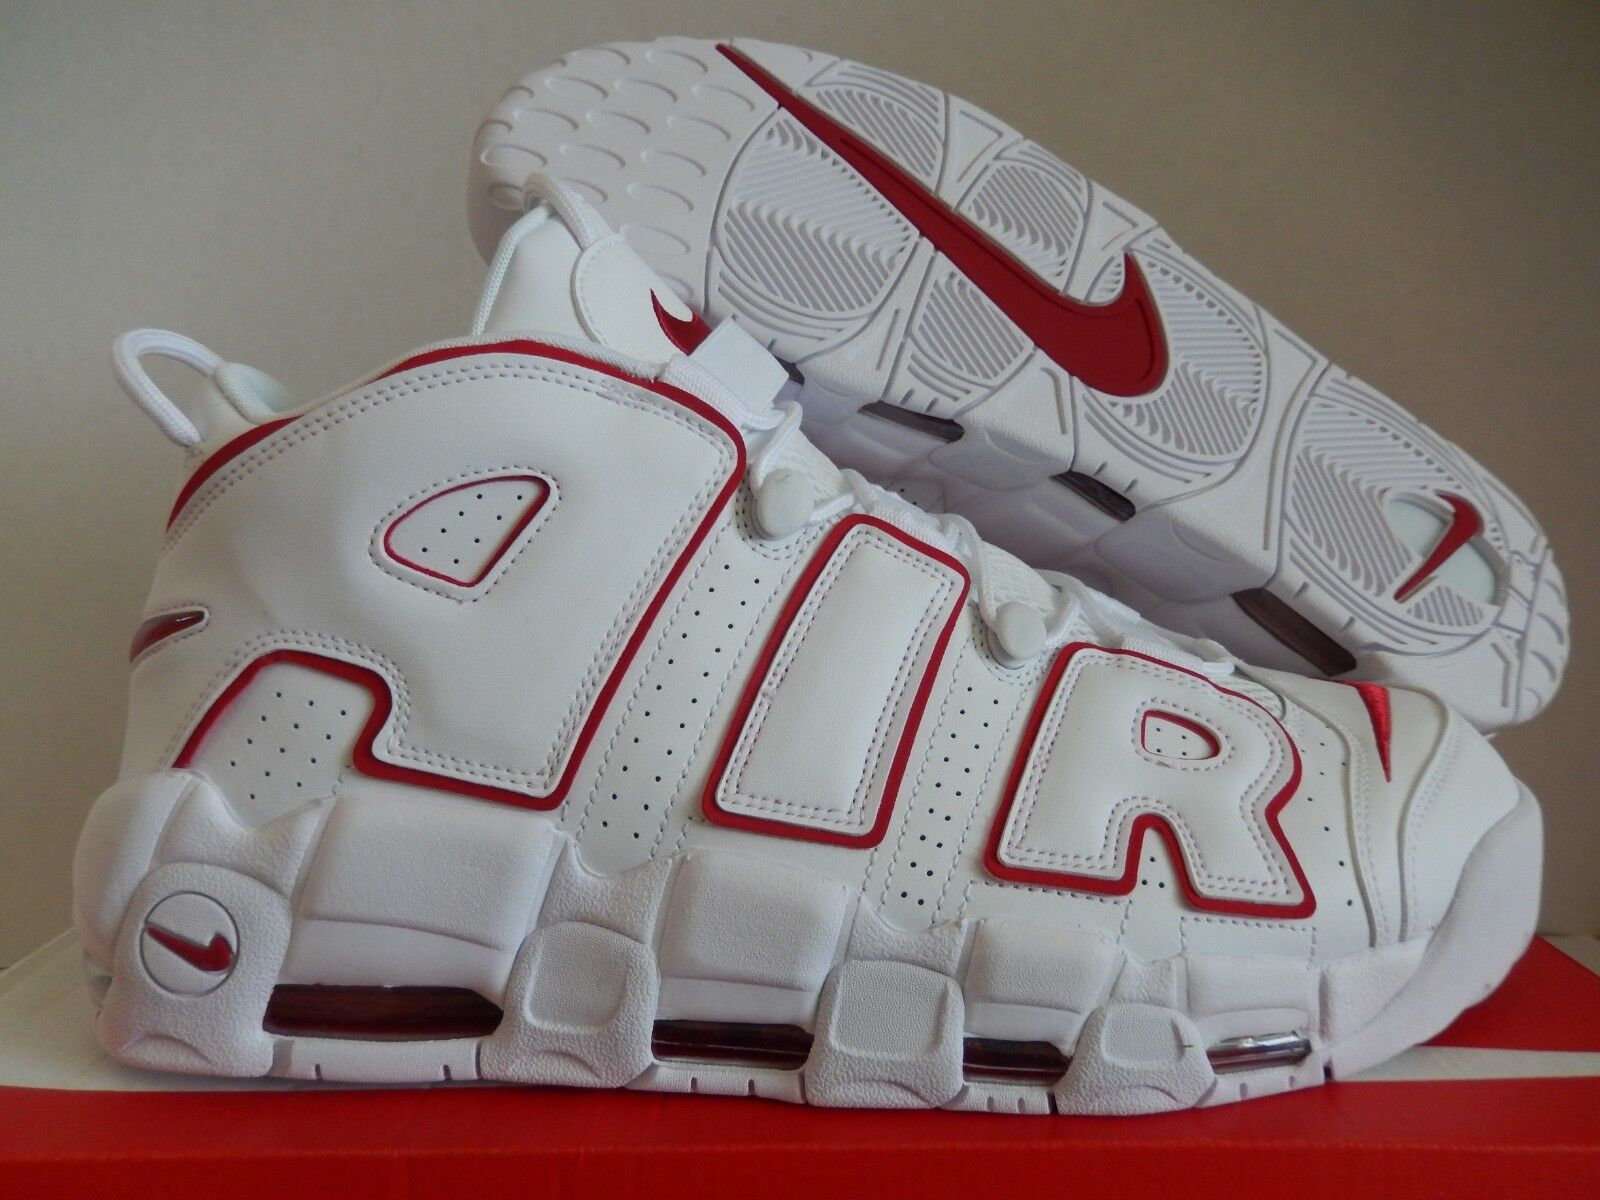 Nike air più ritmo 96 white-var red scottie pippen tori sz 15 [921948-102]